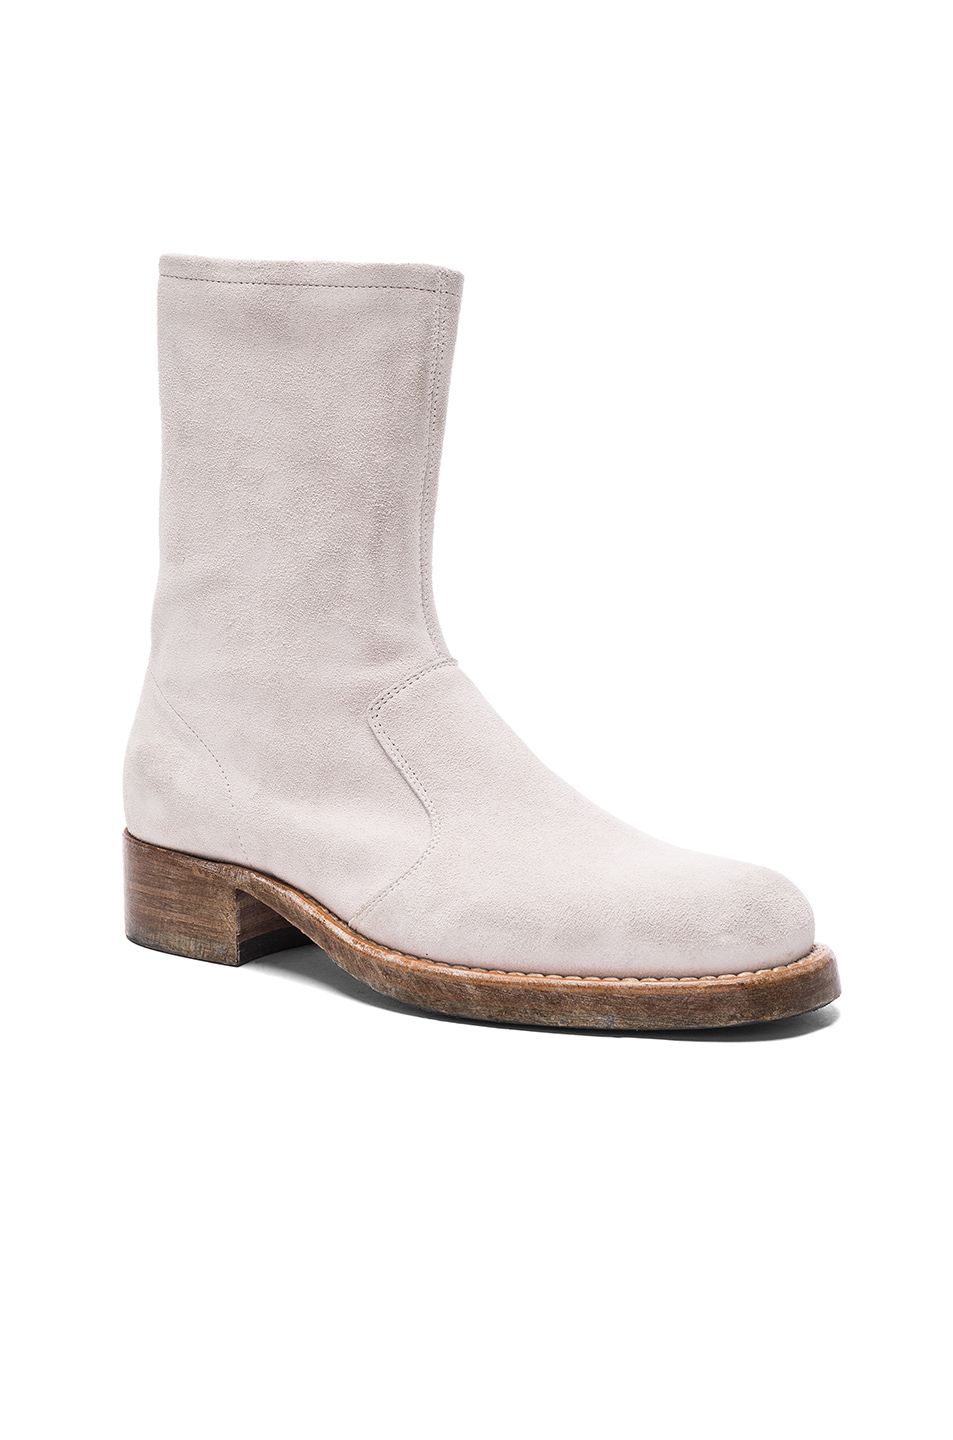 Maison Margiela Vintage Treatment Suede Boots in White